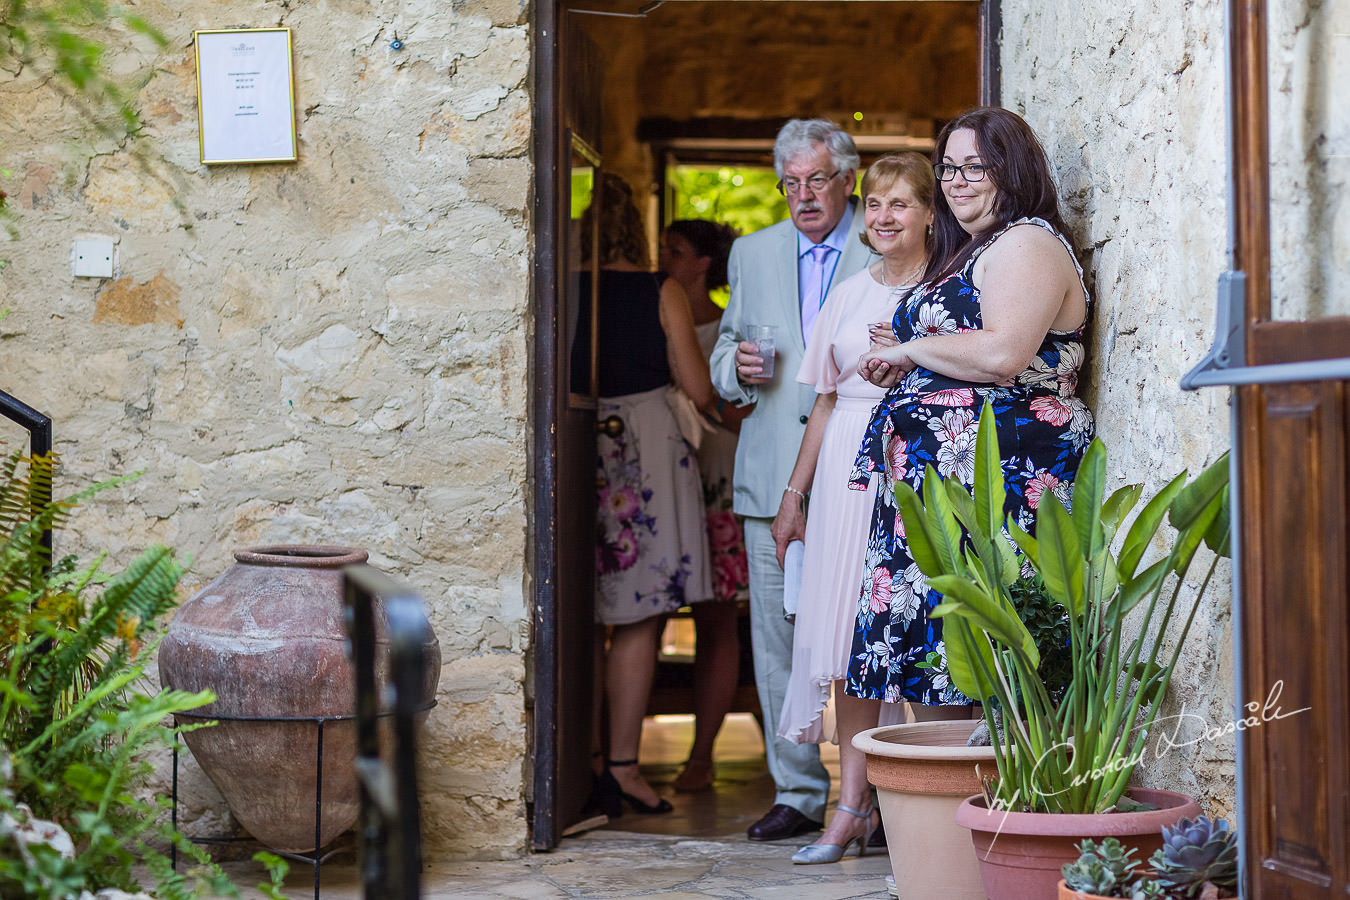 A beautiful wedding day at the Vasilias Nikoklis Inn in Paphos, captured by Cristian Dascalu. Relatives waiting for the wedding ceremony.